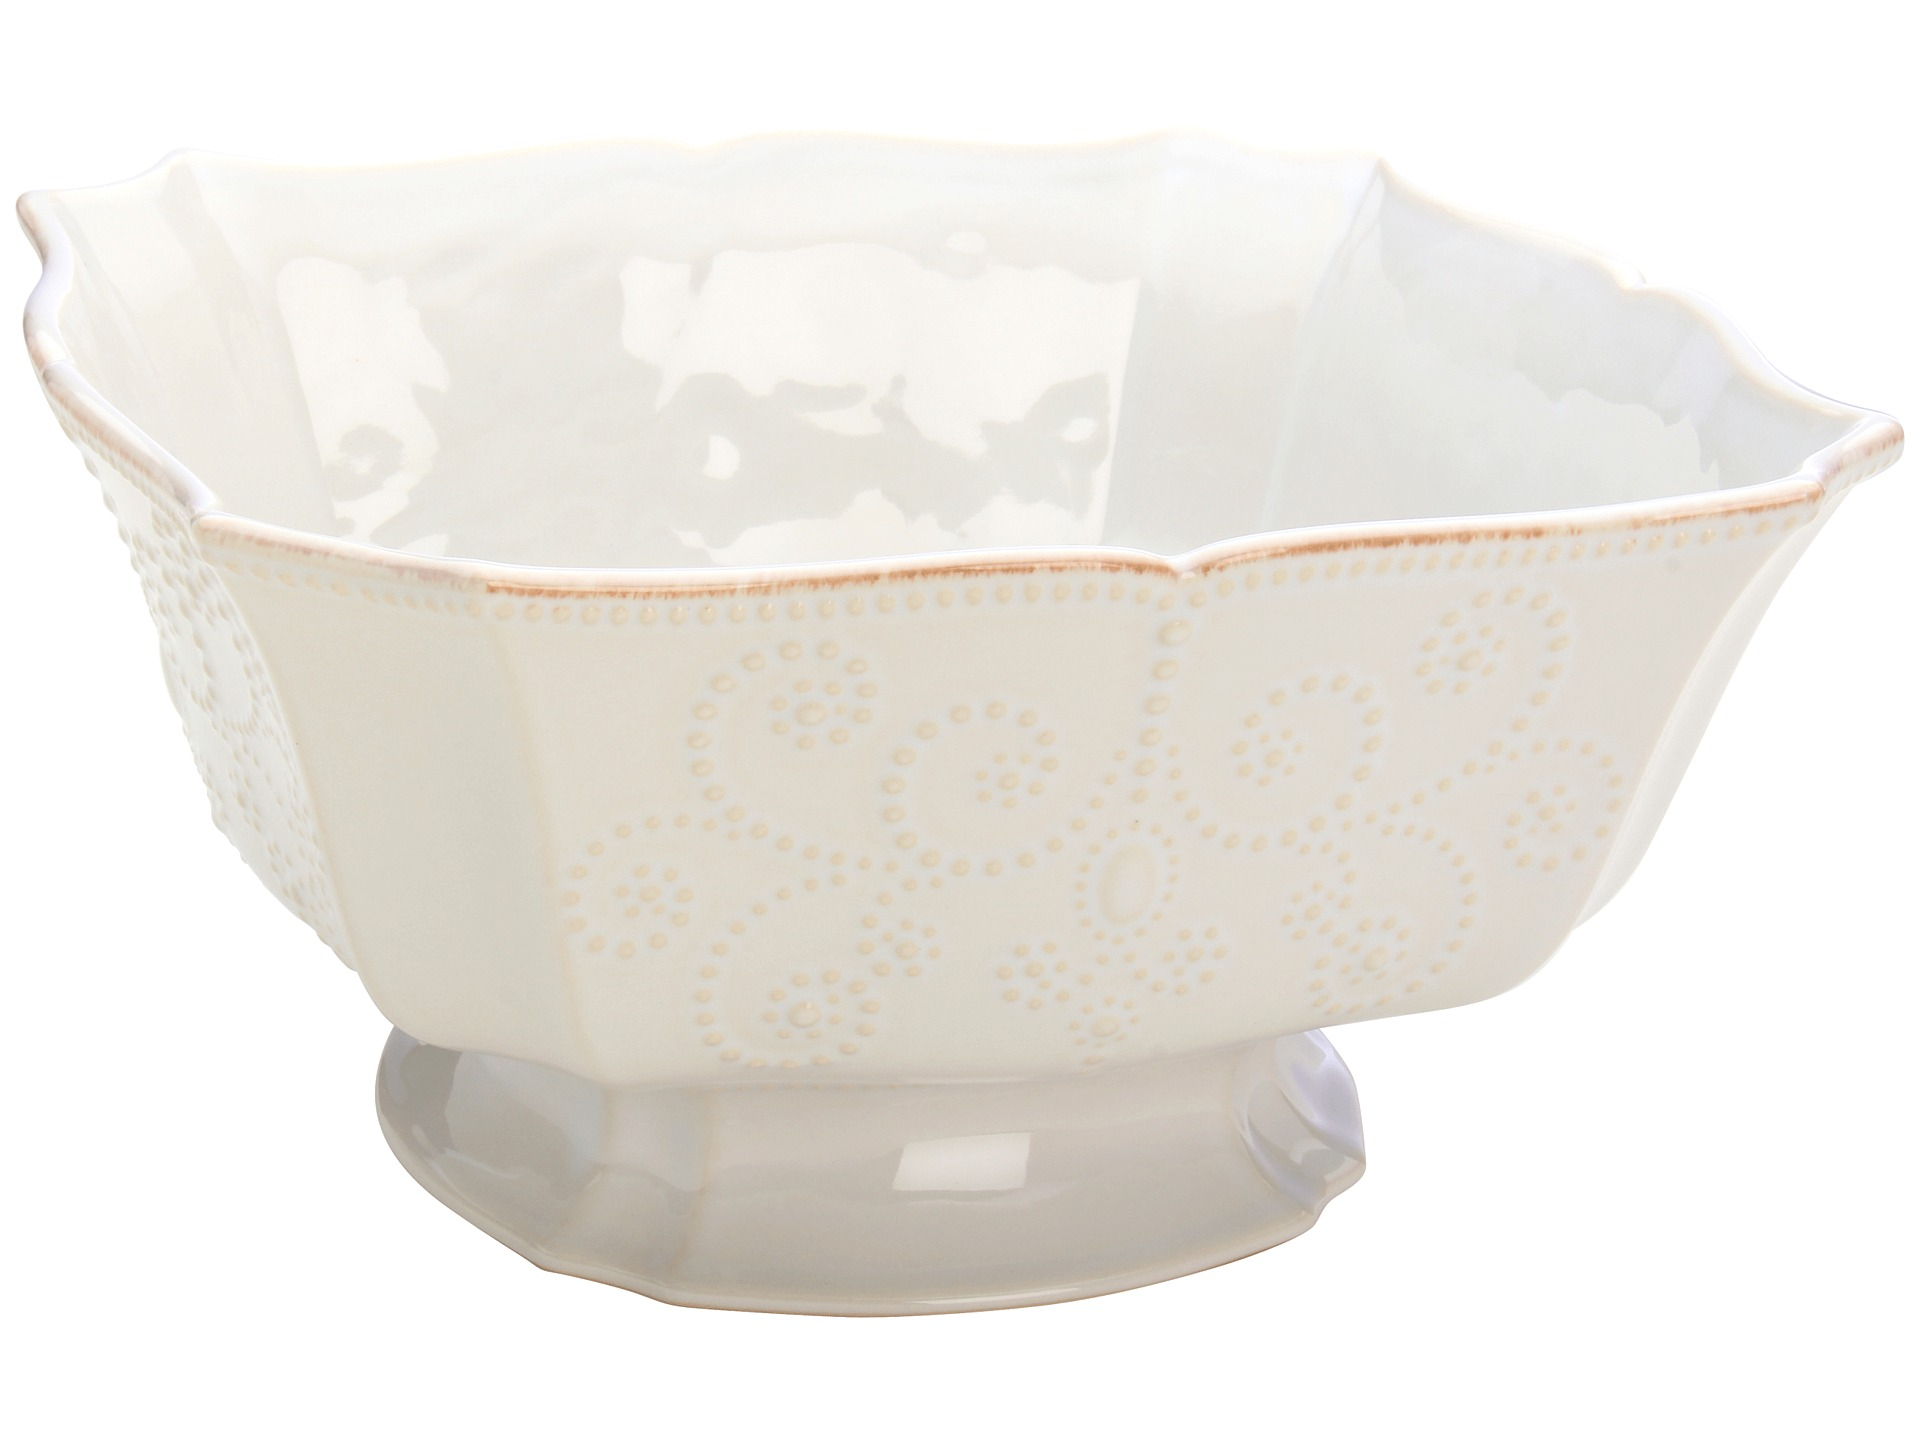 Lenox french perle footed centerpiece bowl white jewelry women shipped free at zappos - Footed bowl centerpiece ...